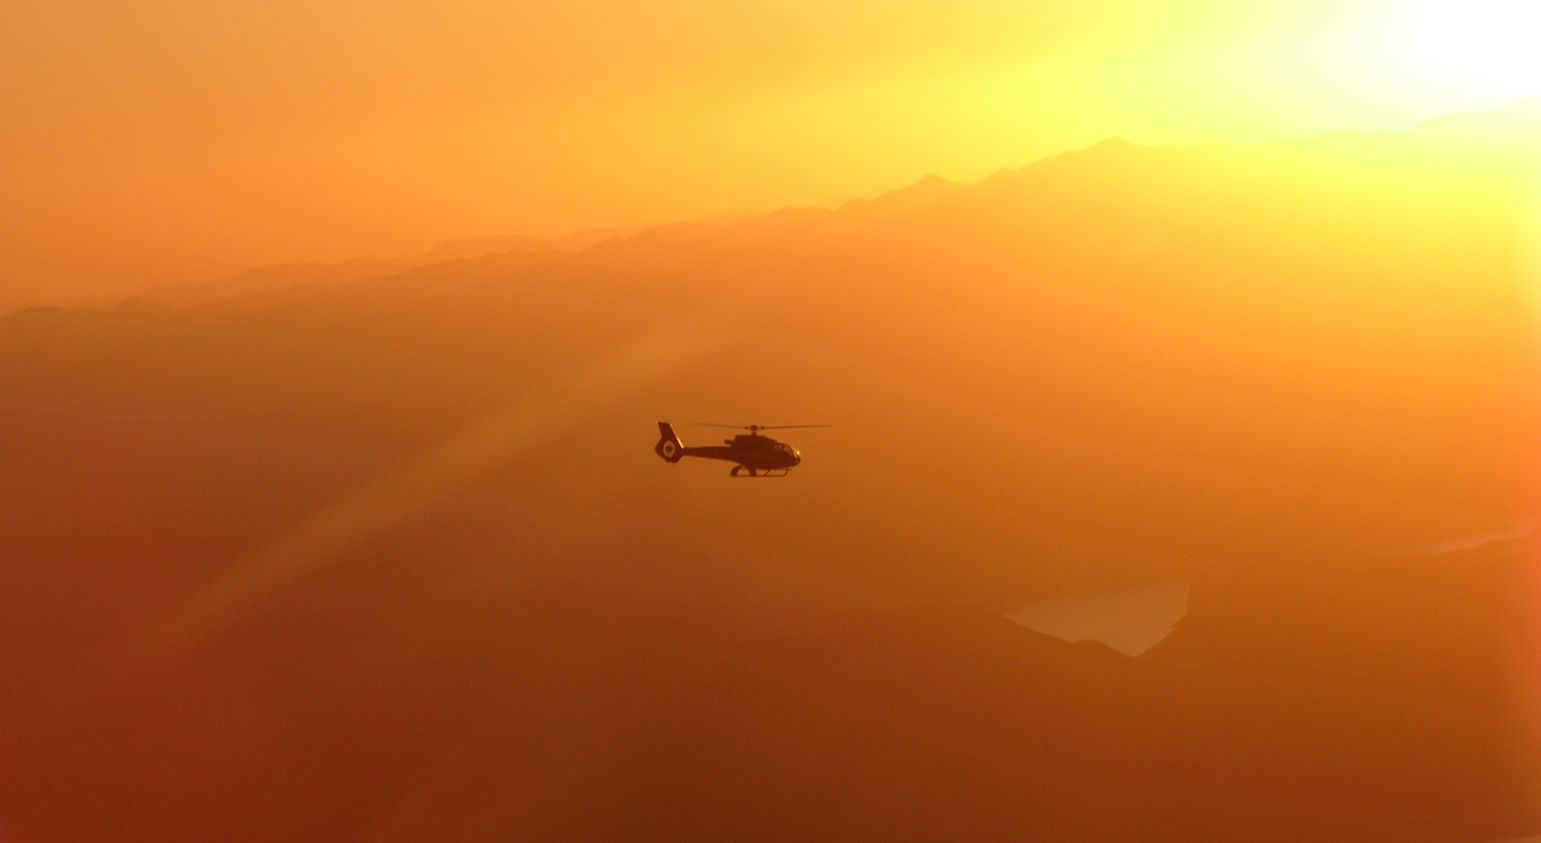 A helicopter flies in an orange sky at sunset.